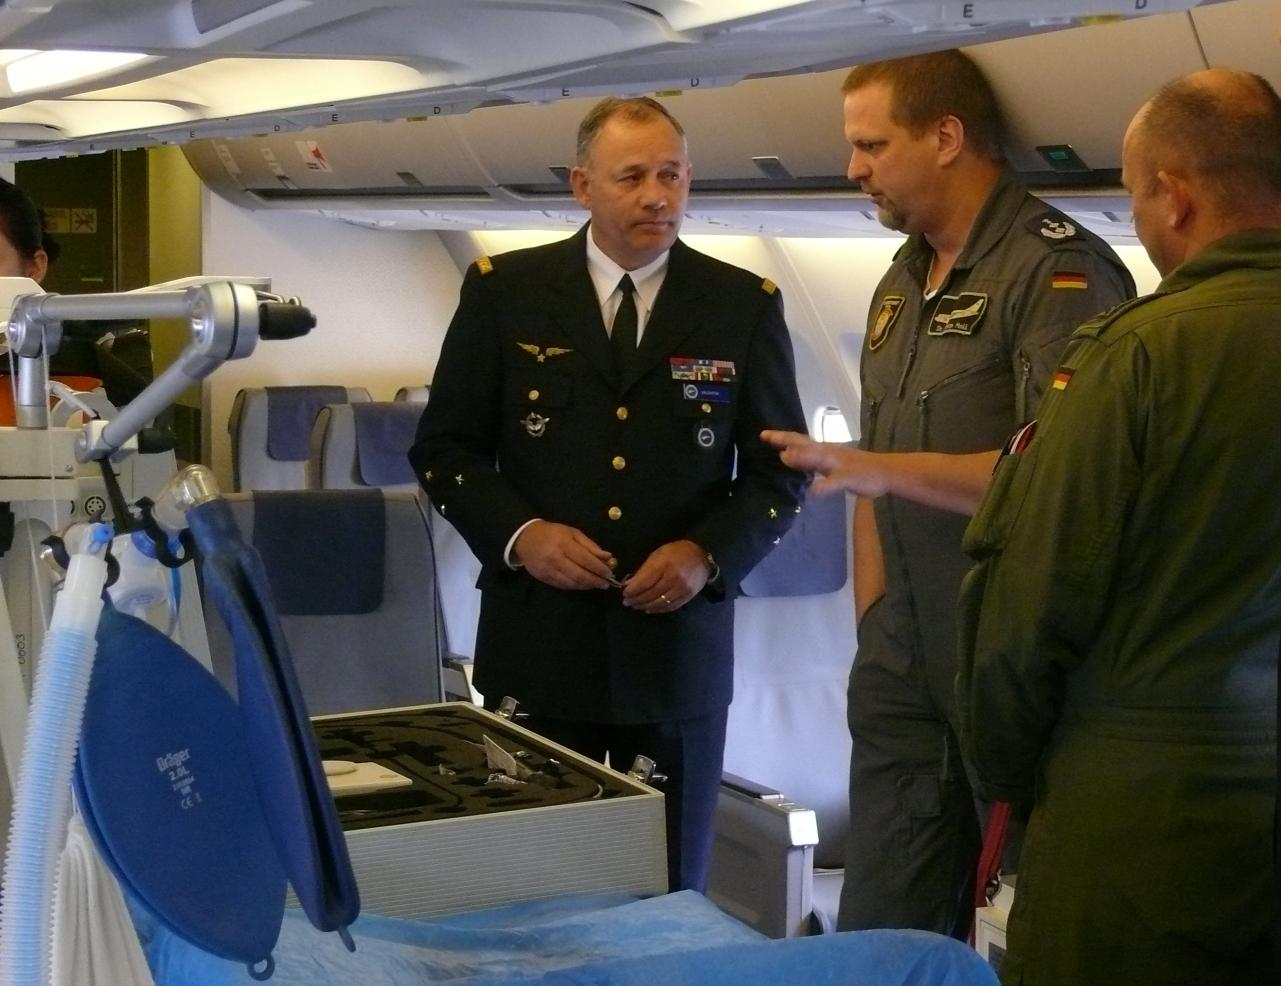 Inside the MRTT with AE-kit (General Valentin left)